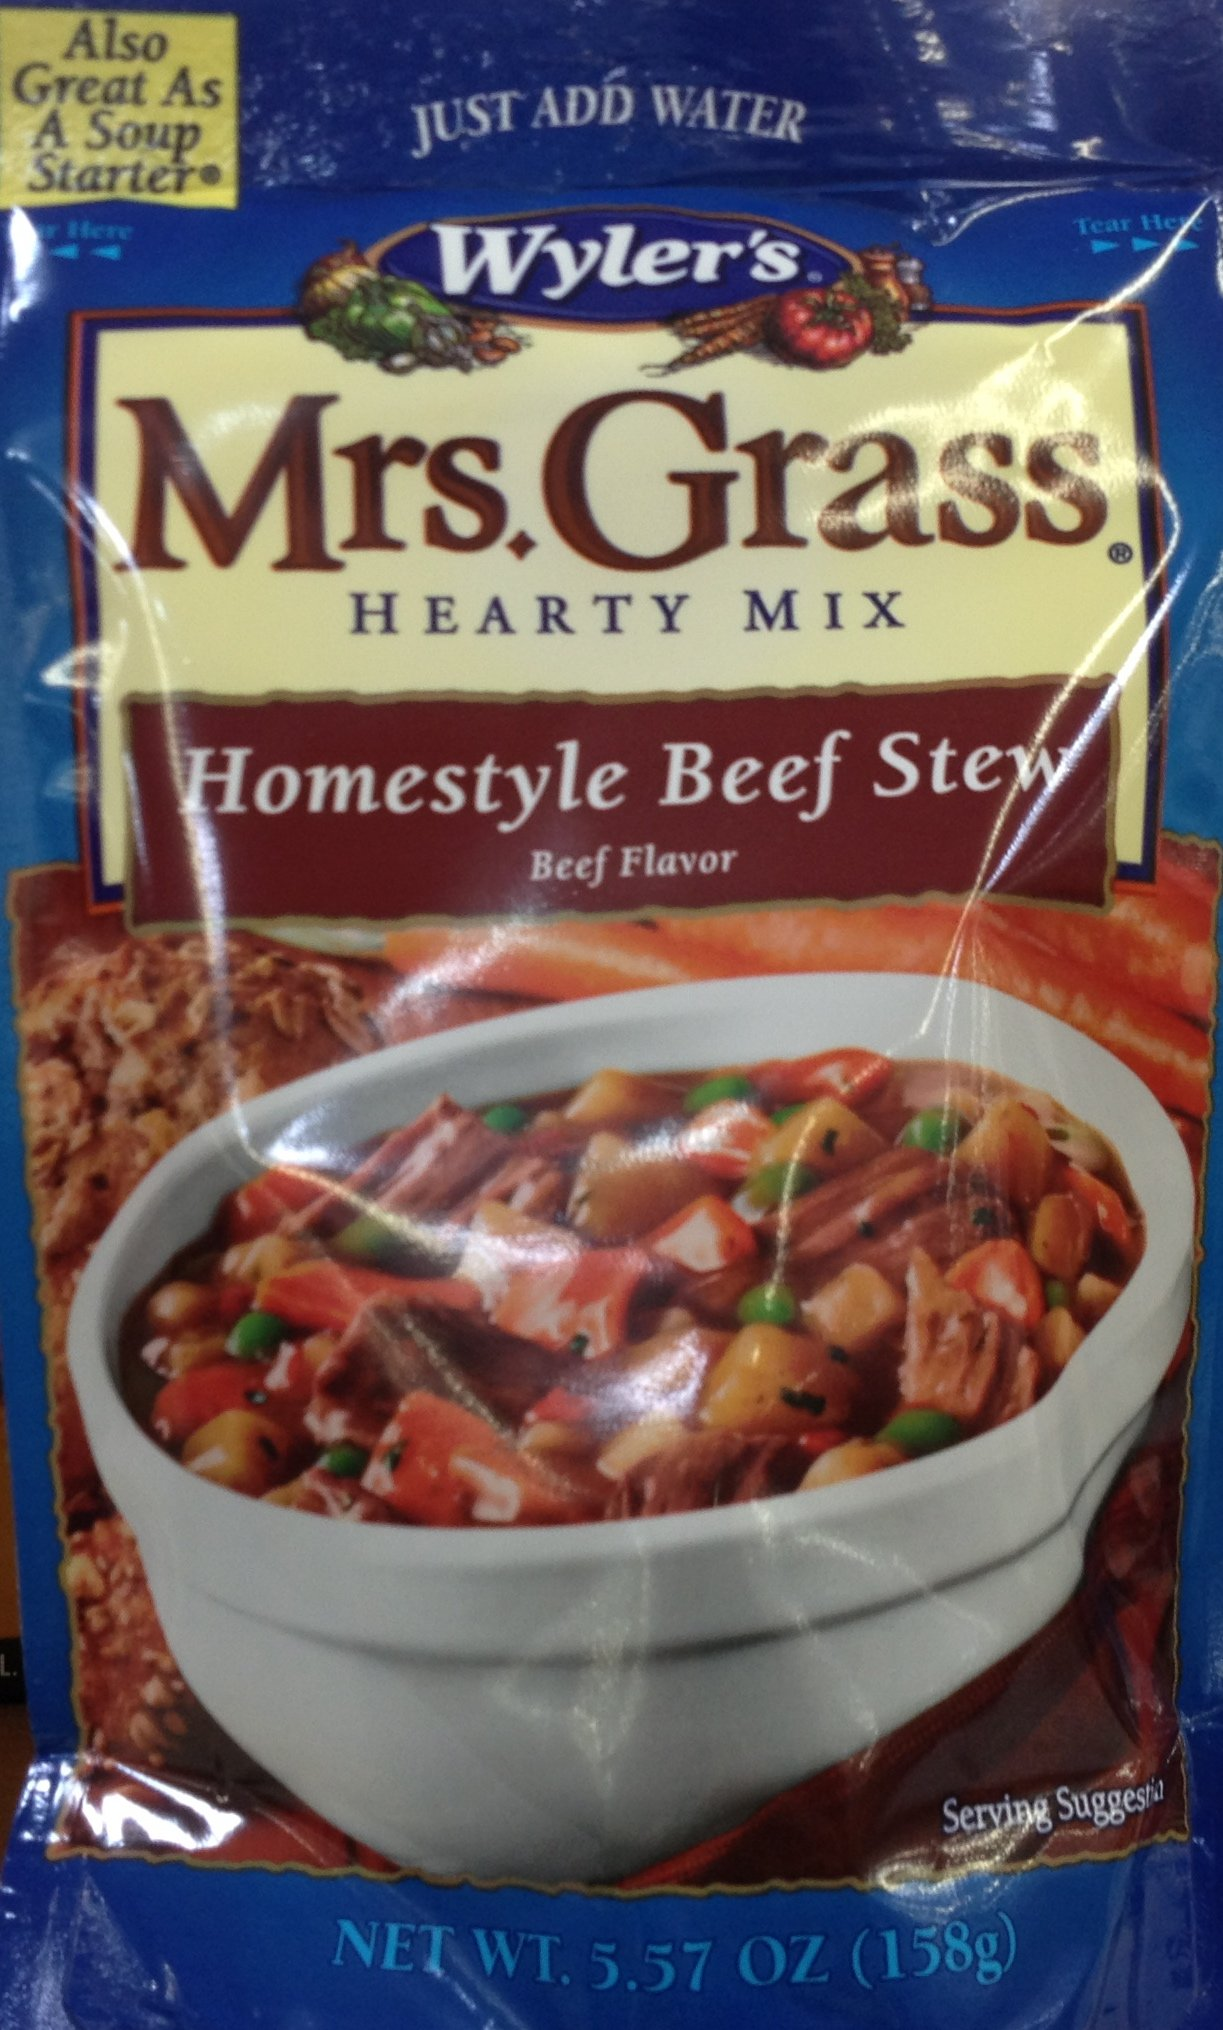 Mrs. Grass Homestyle Beef Stew Mix 5.57oz (Pack of 3)